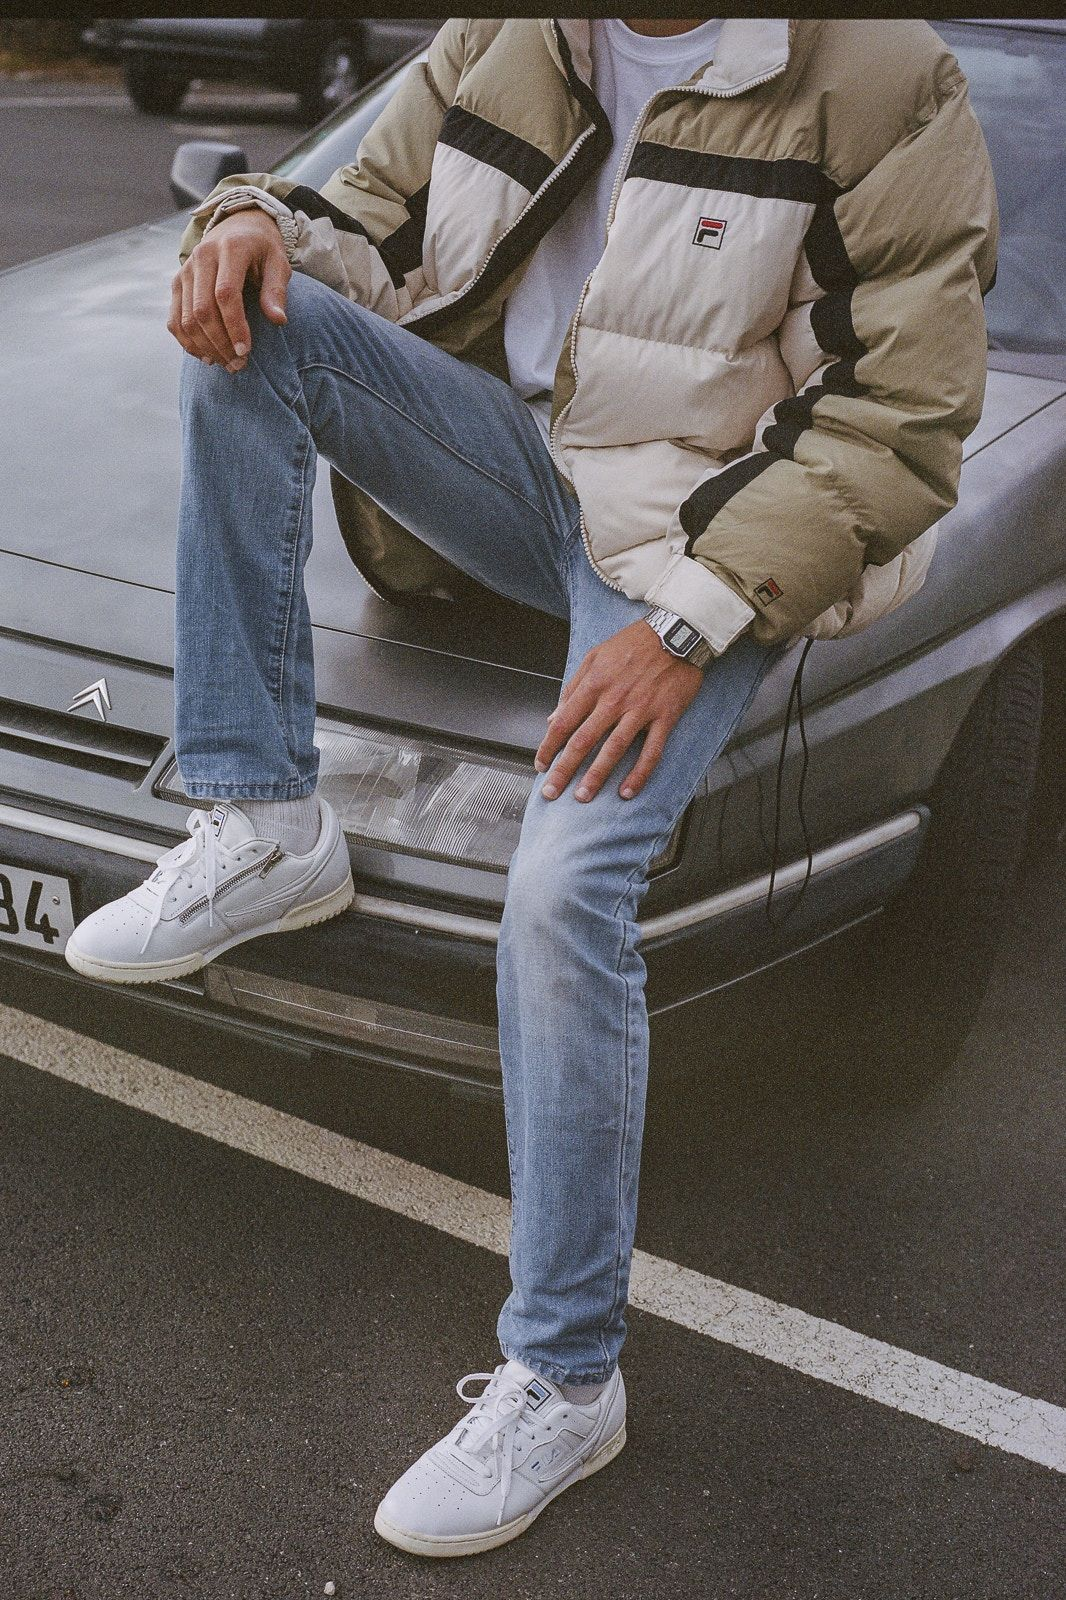 Sneakers outfit men